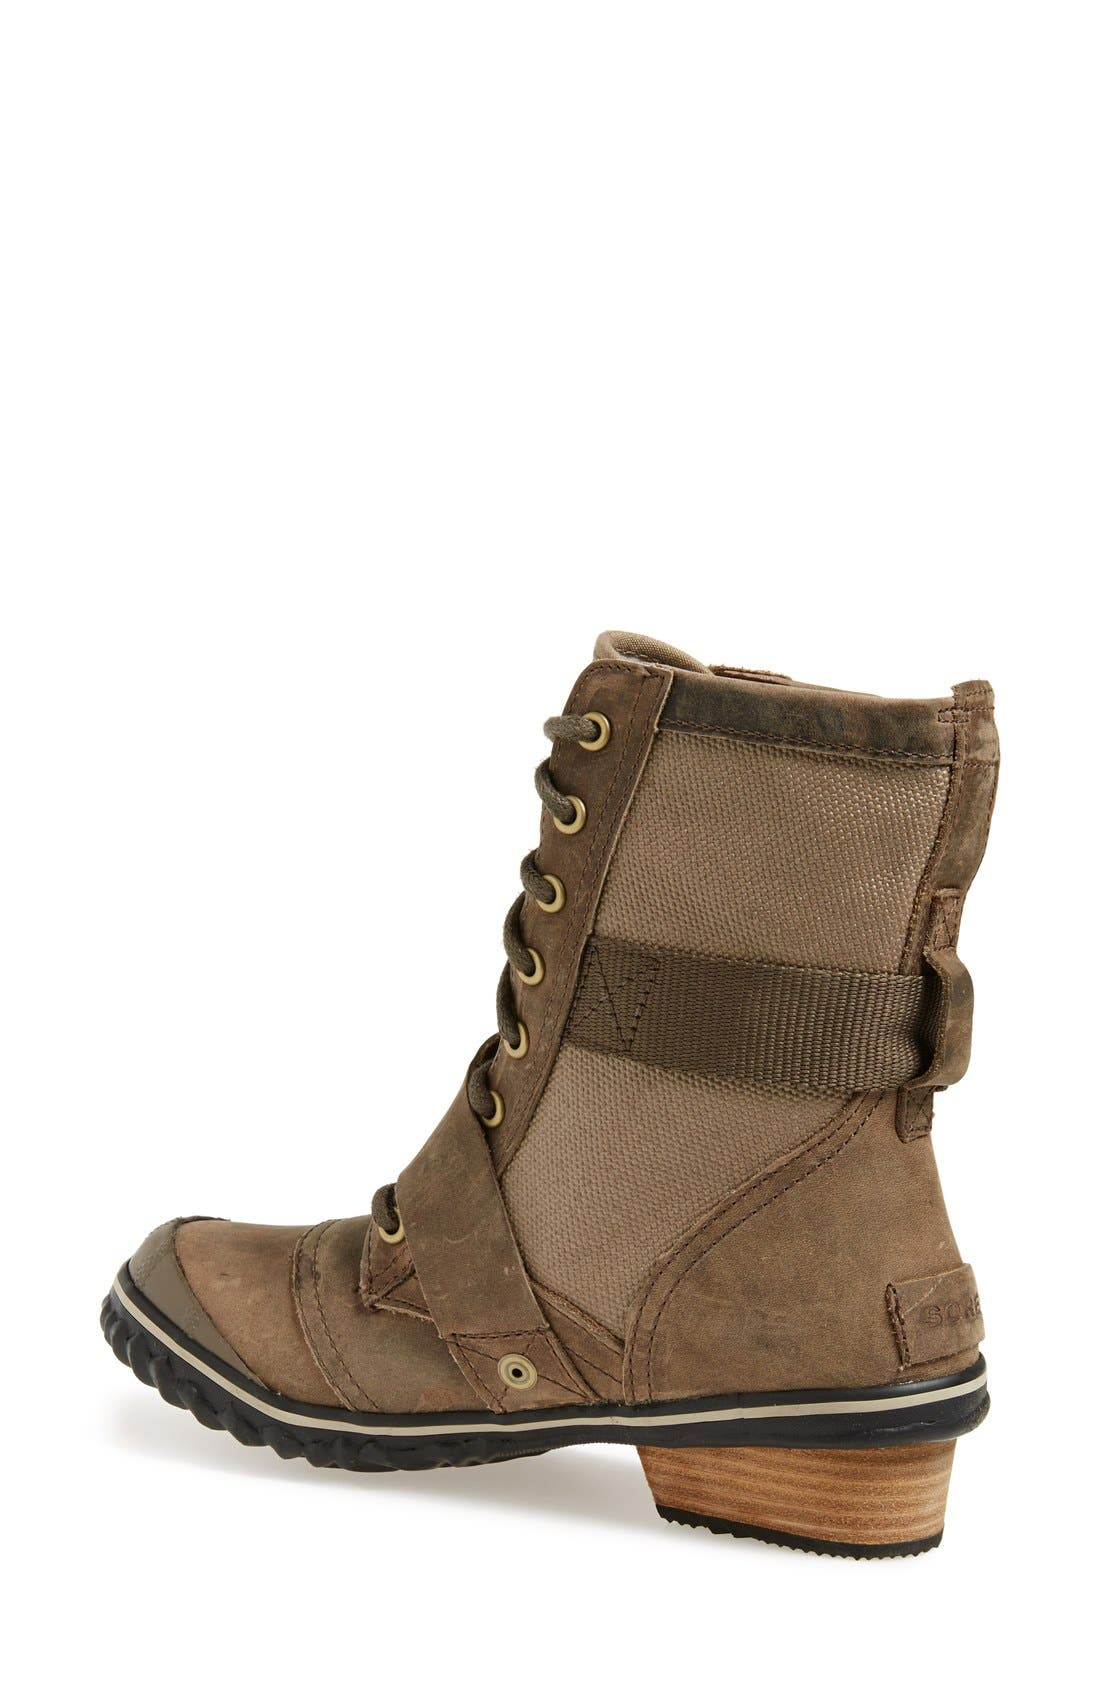 Alternate Image 2  - SOREL 'Slimboot™' Waterproof Lace-Up Boot (Women)